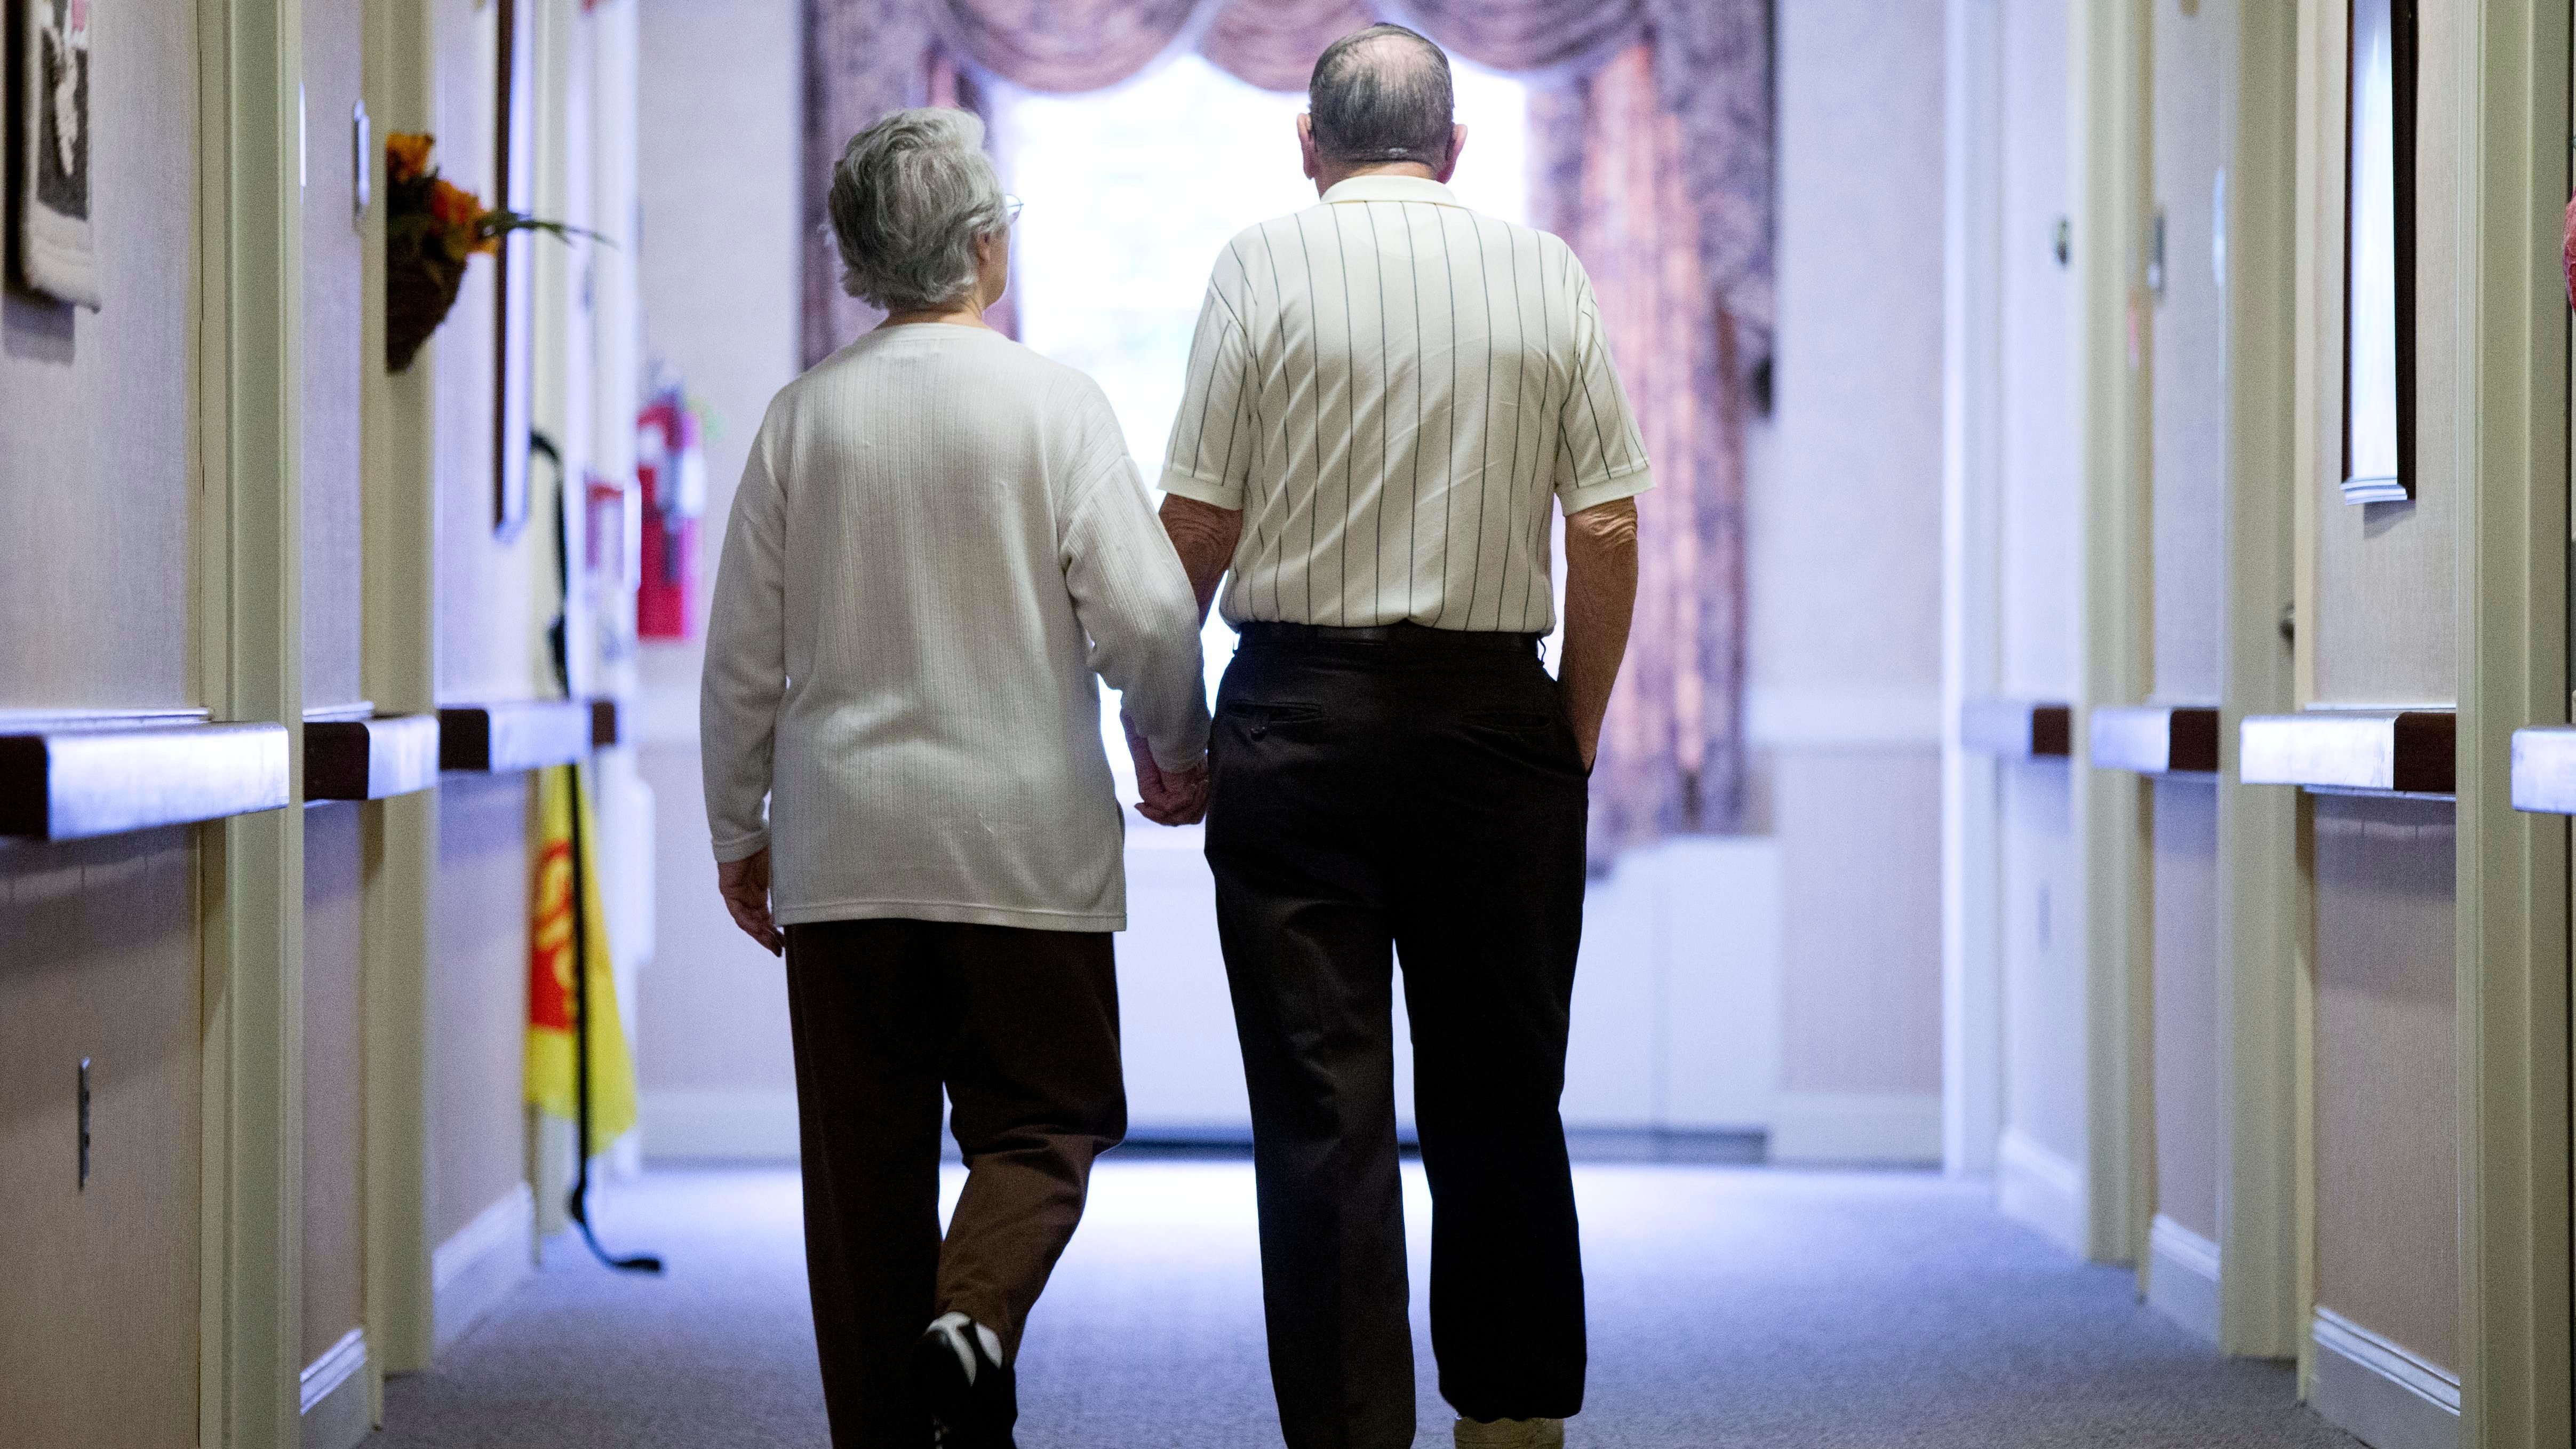 An elderly couple walking down a hallway.